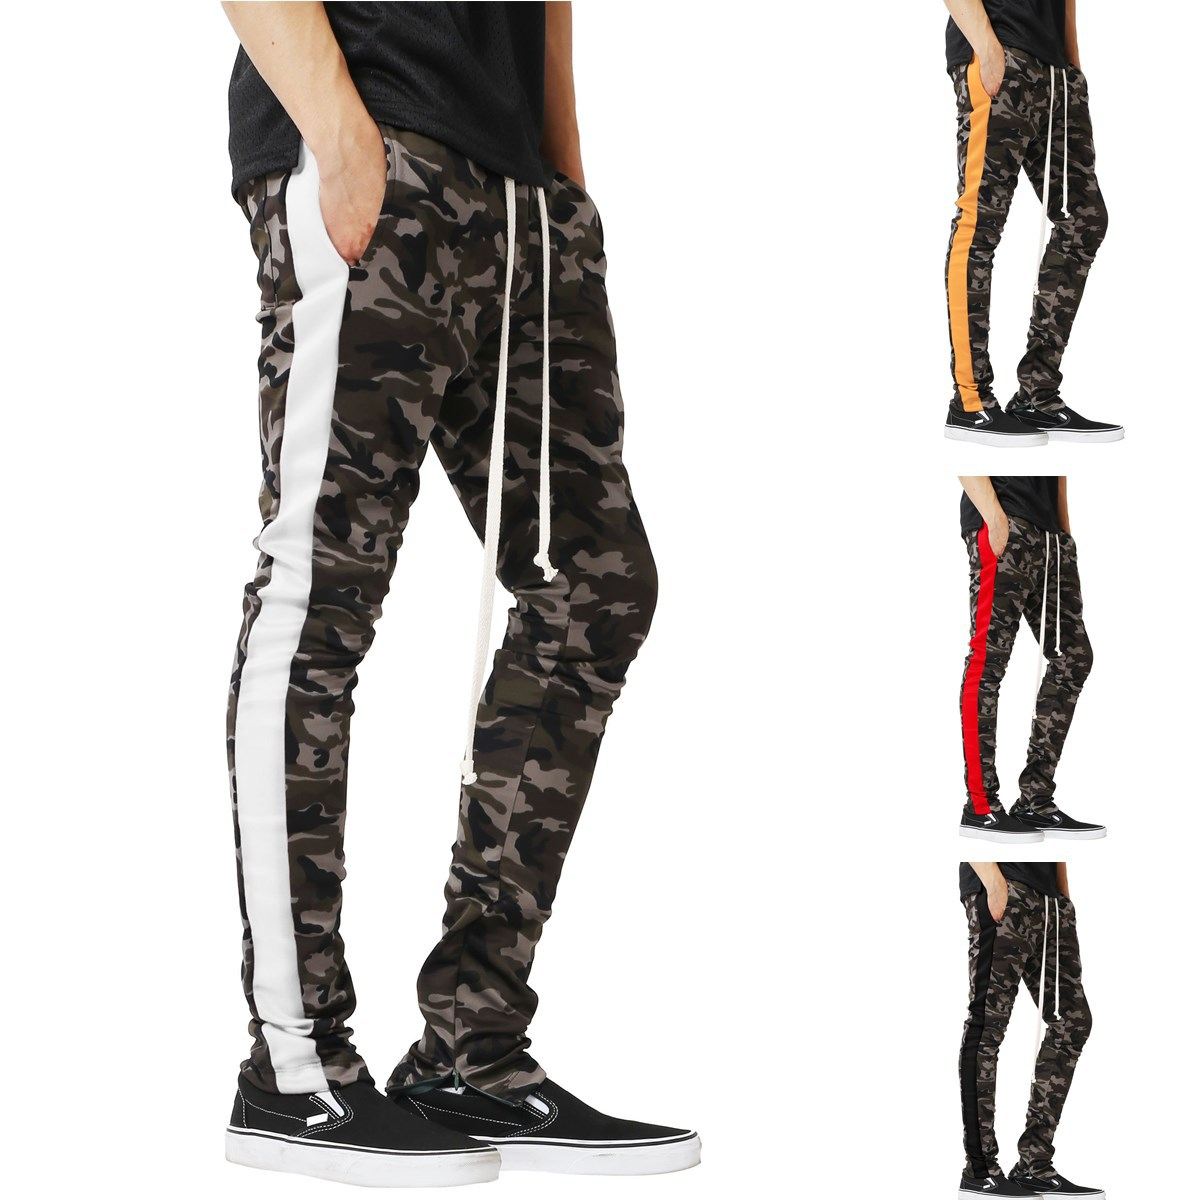 2018 New Style Men Fashion Athletic Pants Camouflage Printed Mixed Colors Foot Mouth Zipper Casual Trousers